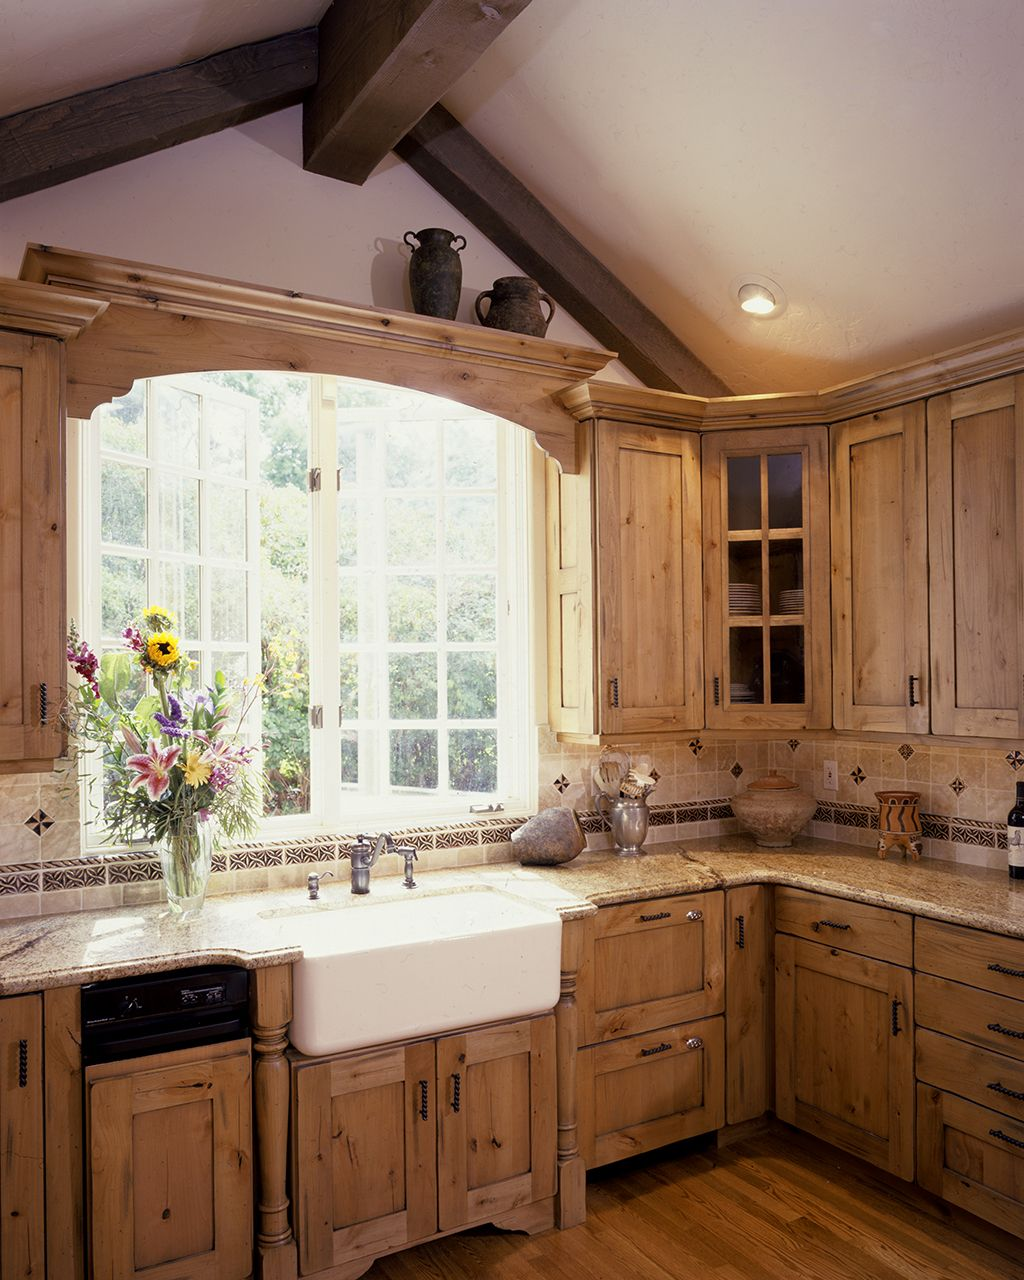 Rustic Pine Kitchen Cabinets: Bright Country Kitchen In The Suburbs